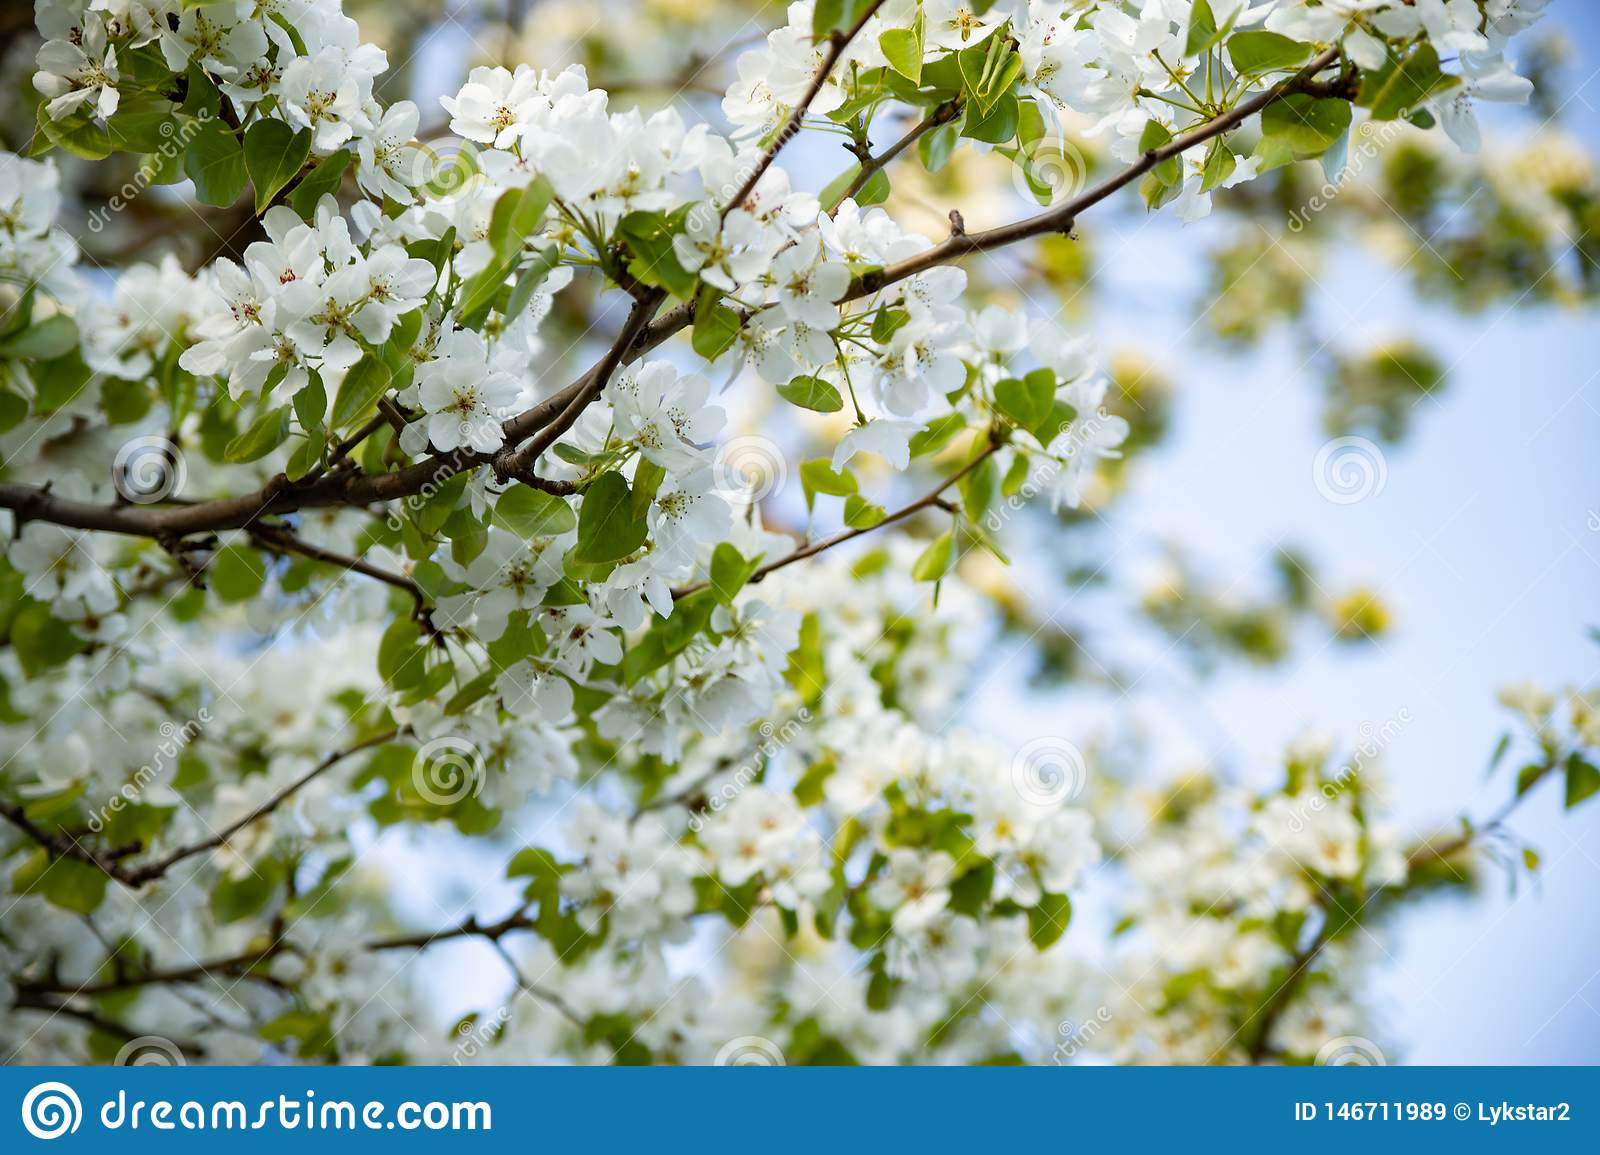 Apple tree blooming with white flowers against the blue sky